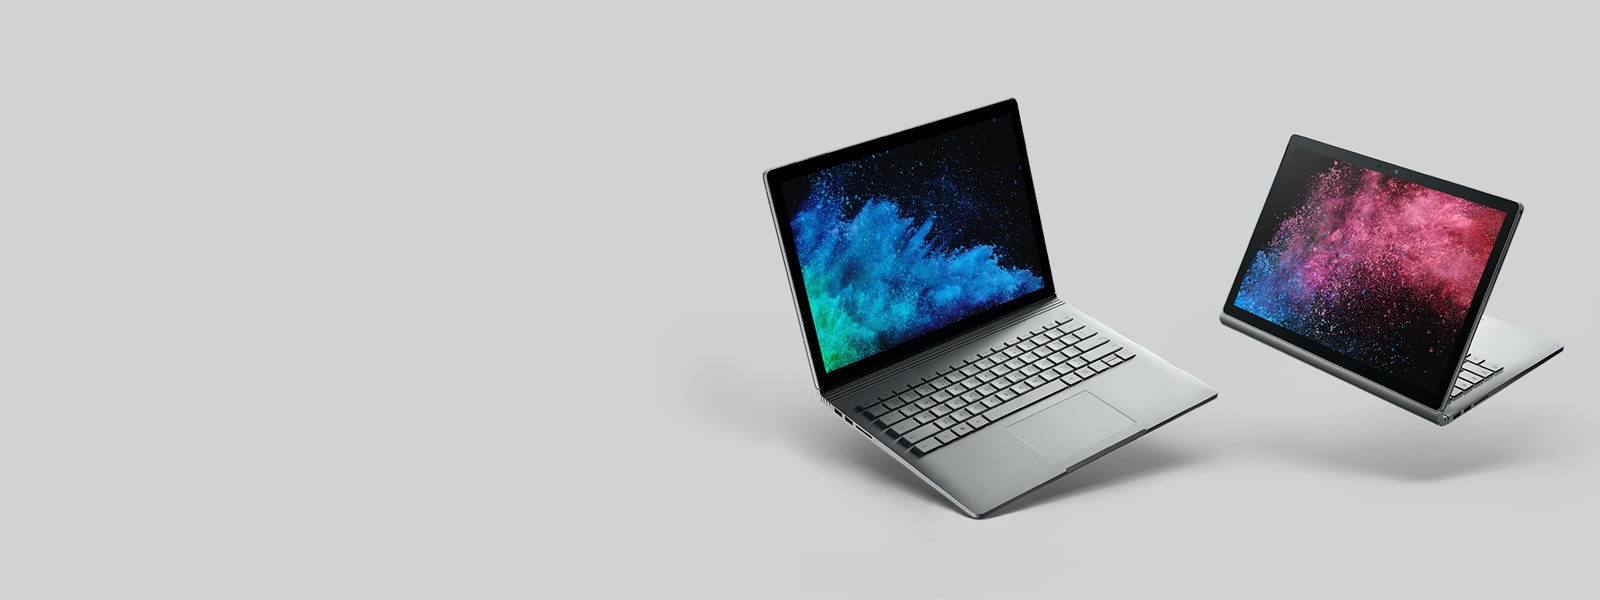 Surface Book 2 device